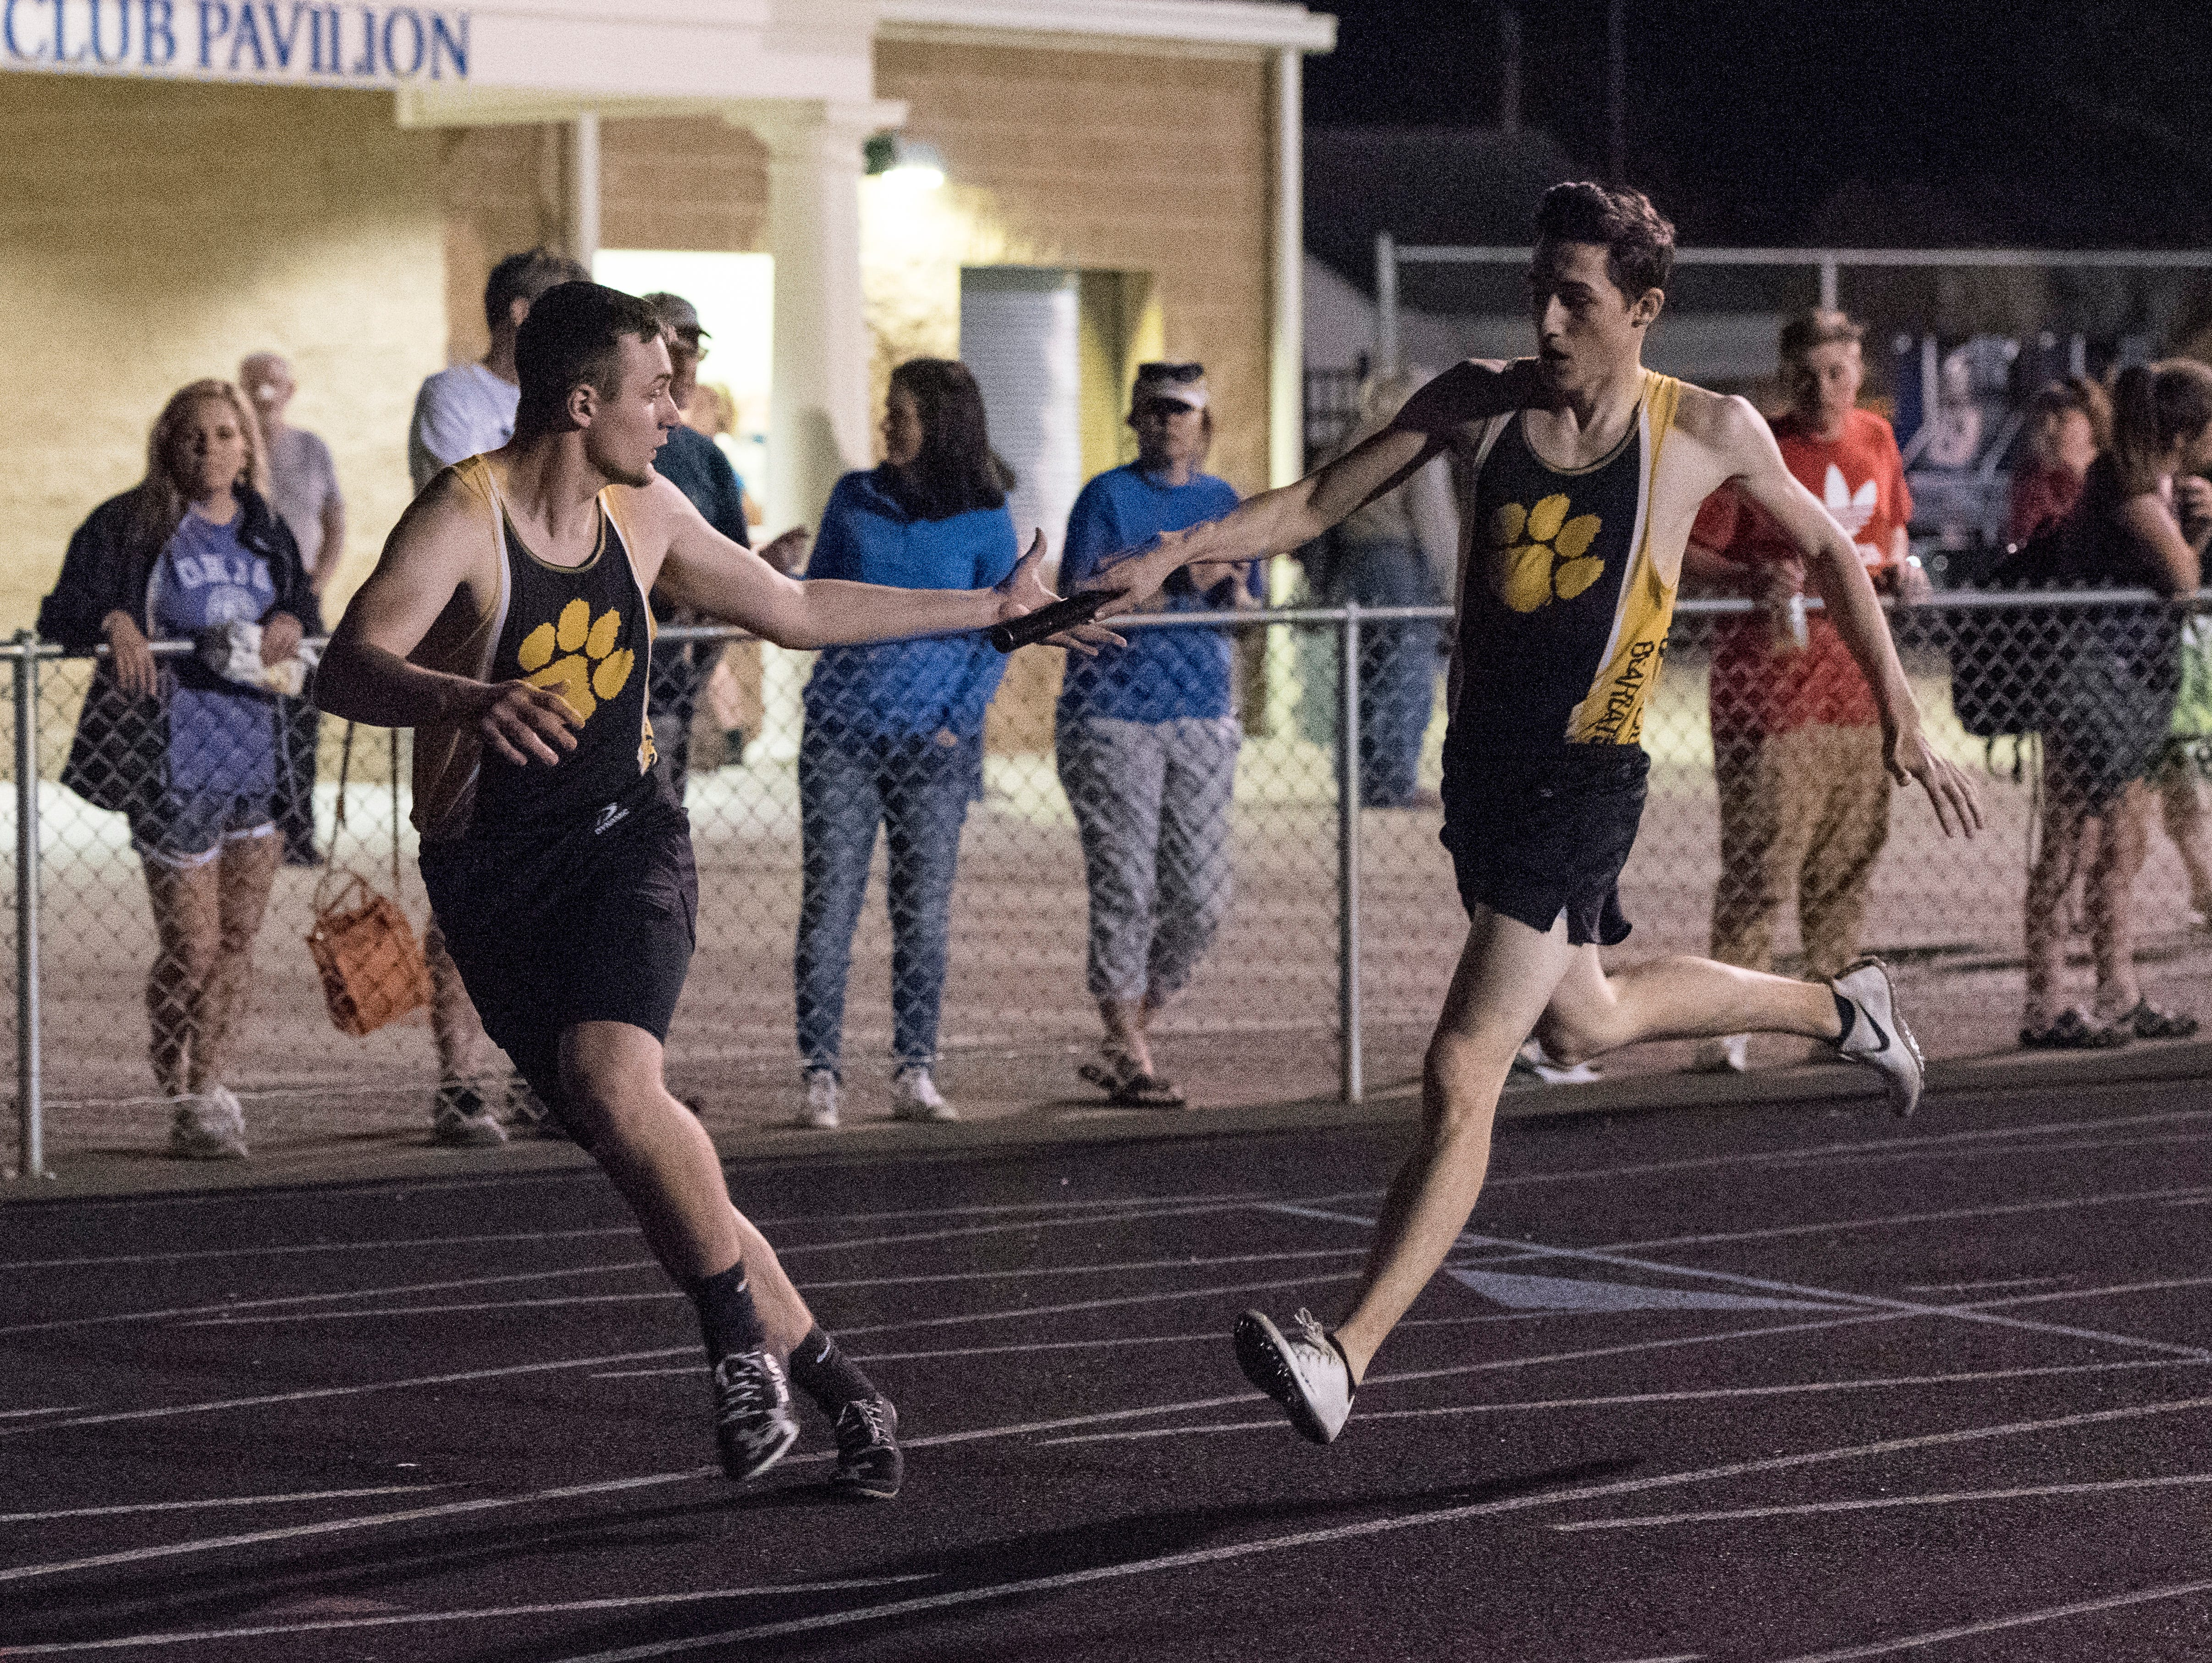 The Chillicothe boys took first place and the girls third place overall at the annual Chillicothe Invitational track meet on April 18, 2019. Other local teams that participated were Zane Trace, Unioto, Paint Valley, Waverly, and Adena.